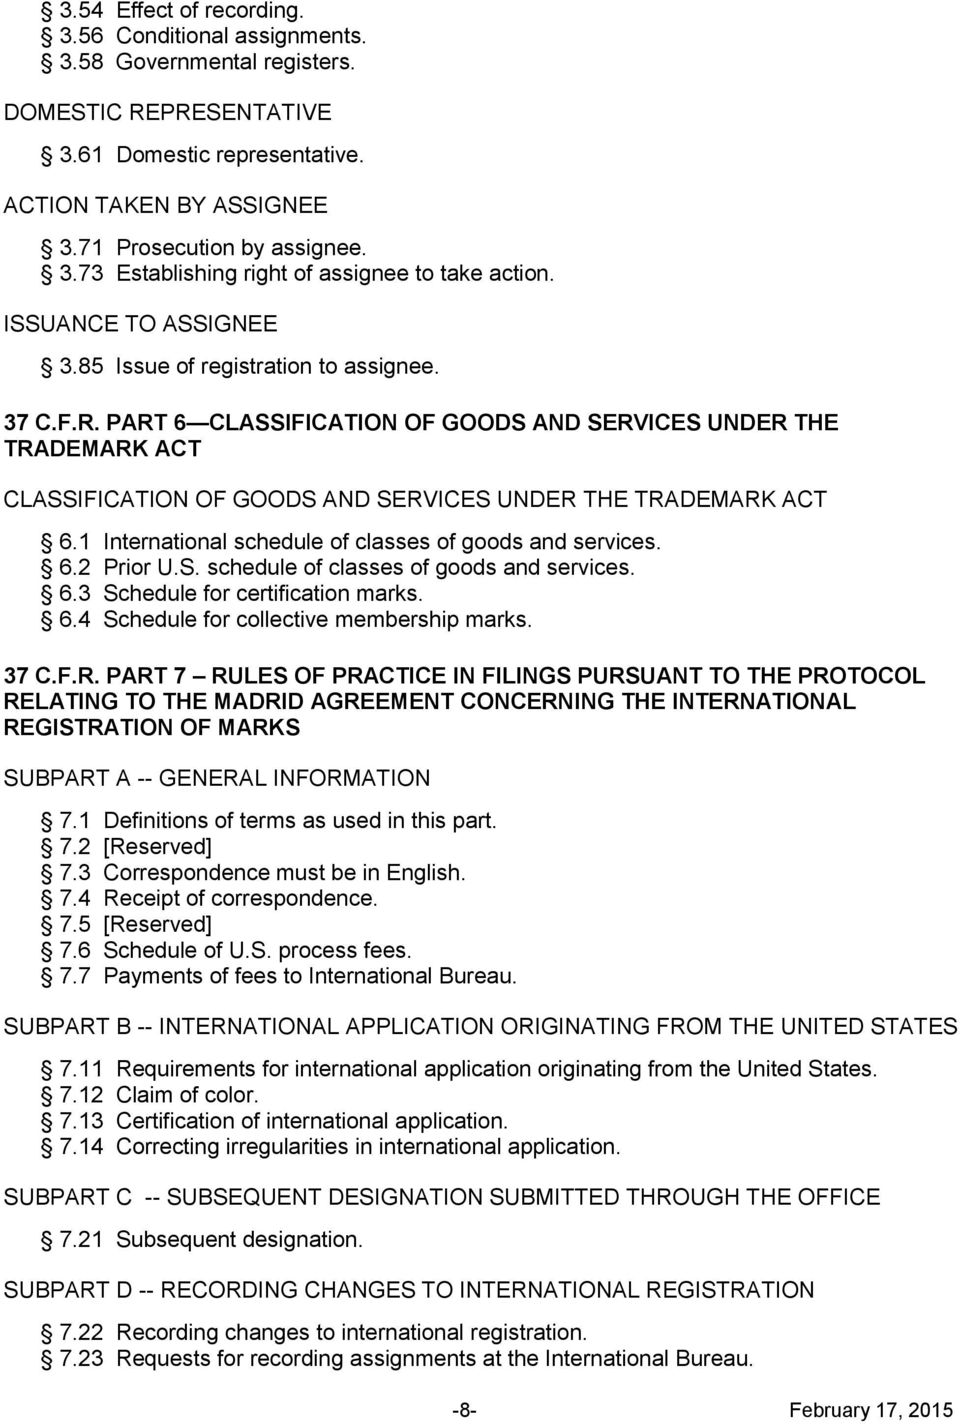 PART 6 CLASSIFICATION OF GOODS AND SERVICES UNDER THE TRADEMARK ACT CLASSIFICATION OF GOODS AND SERVICES UNDER THE TRADEMARK ACT 6.1 International schedule of classes of goods and services. 6.2 Prior U.